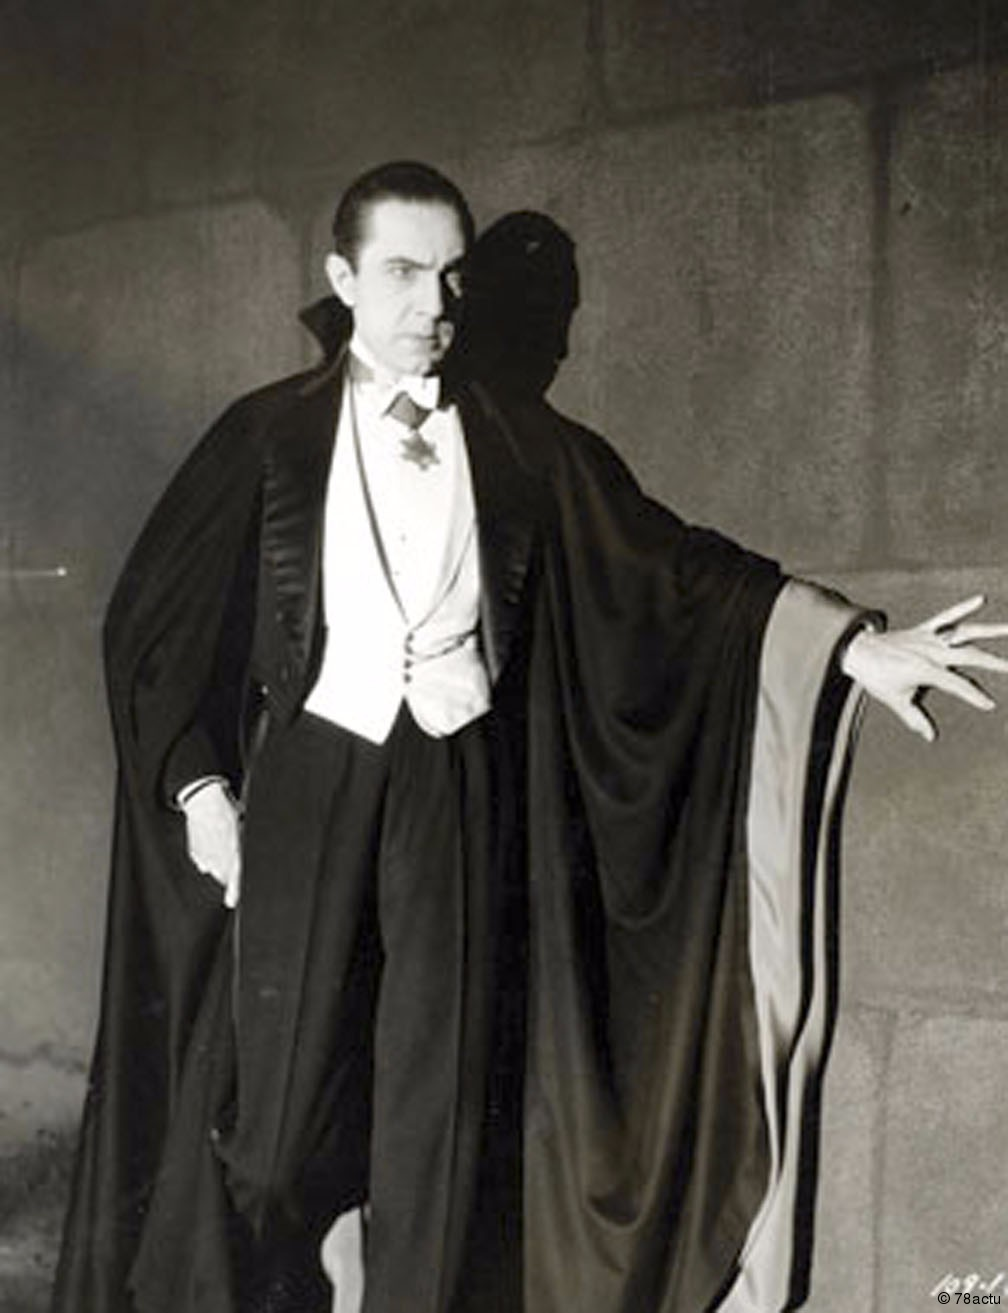 Bela Lugosi as Dracula in the 1931 dracula adaptation from Universal Studios.